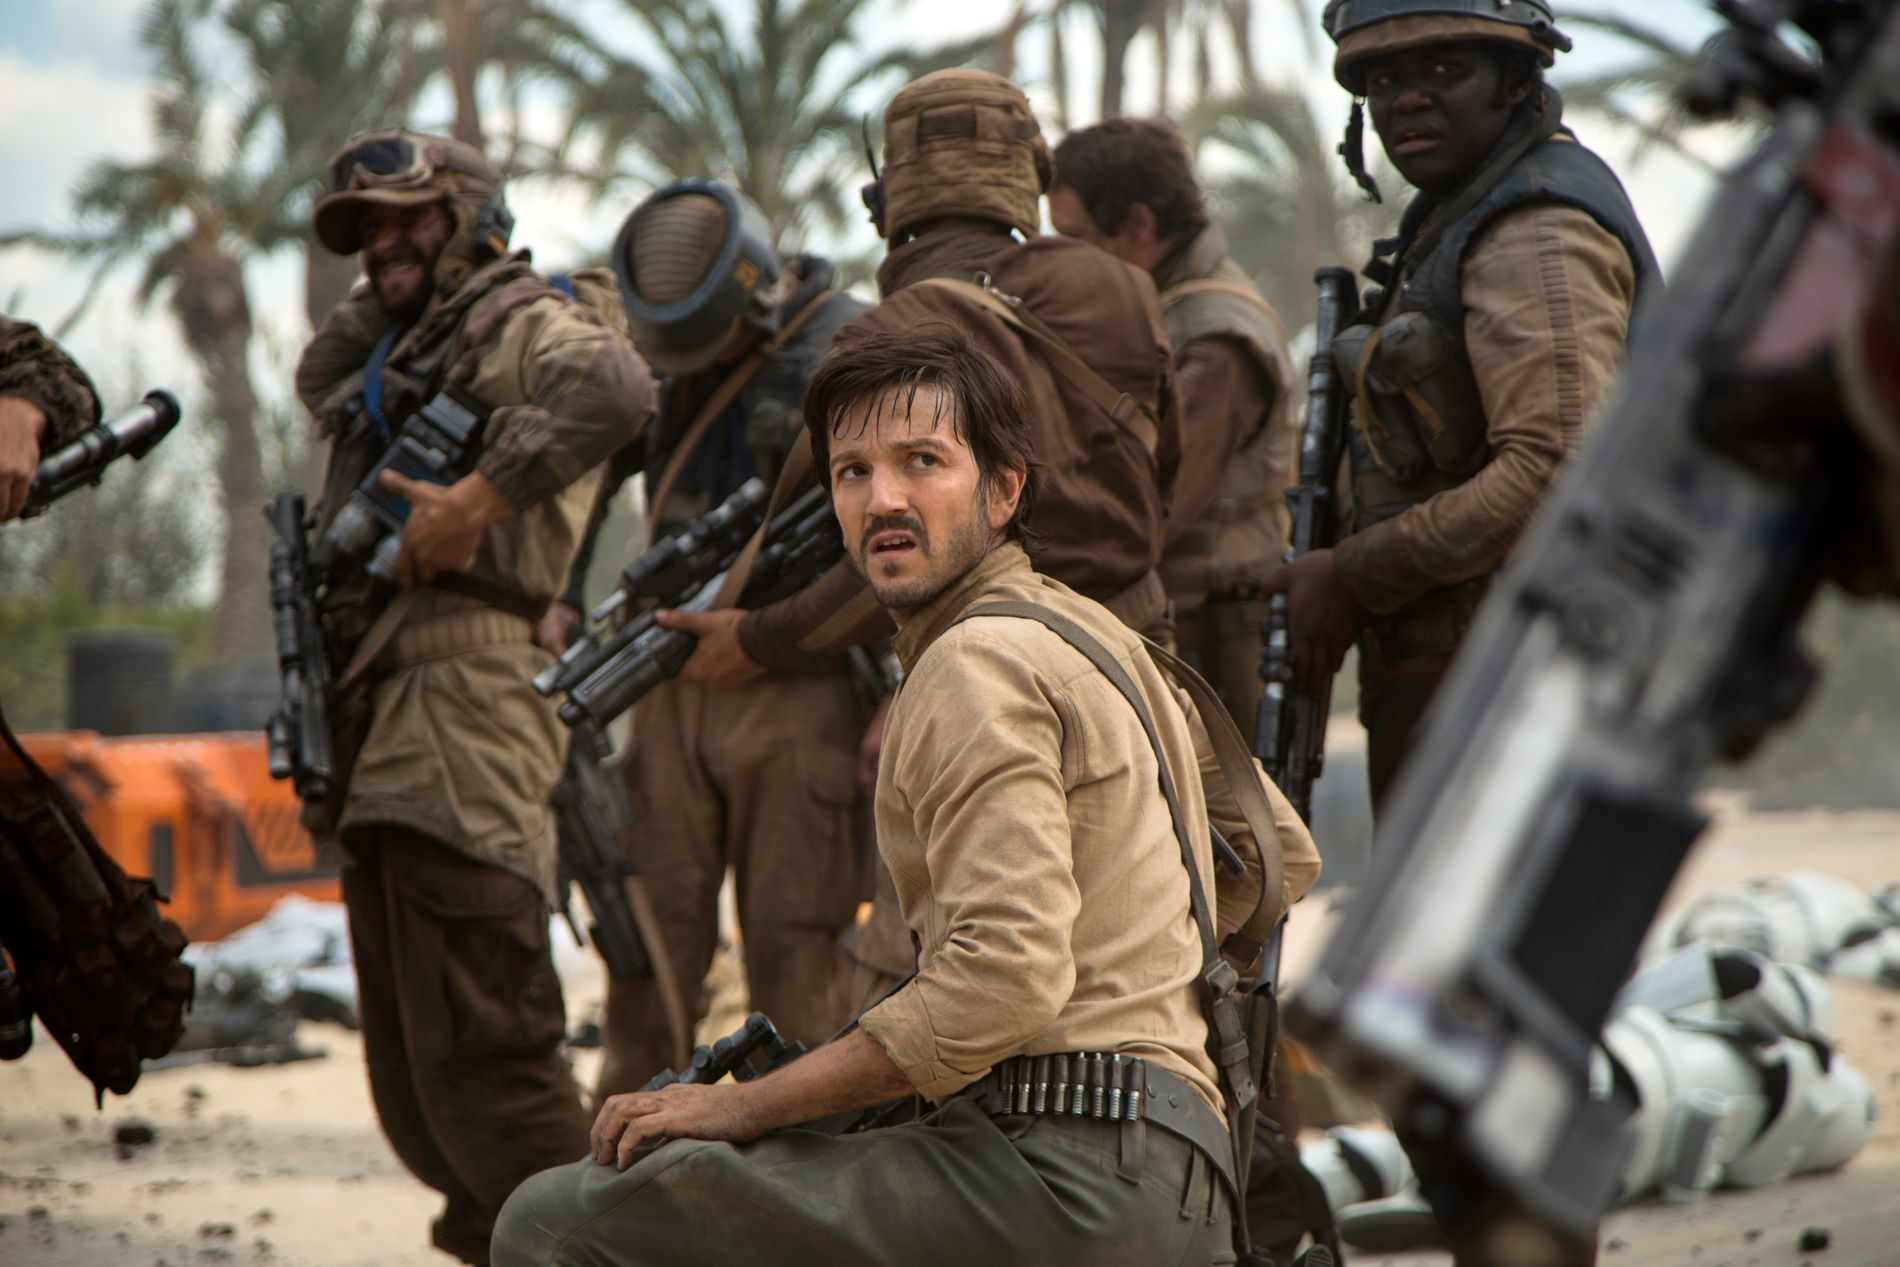 NYTT EVENTYR: Diego Luna som Cassian Andor i «Rogue One: A Star Wars Story».